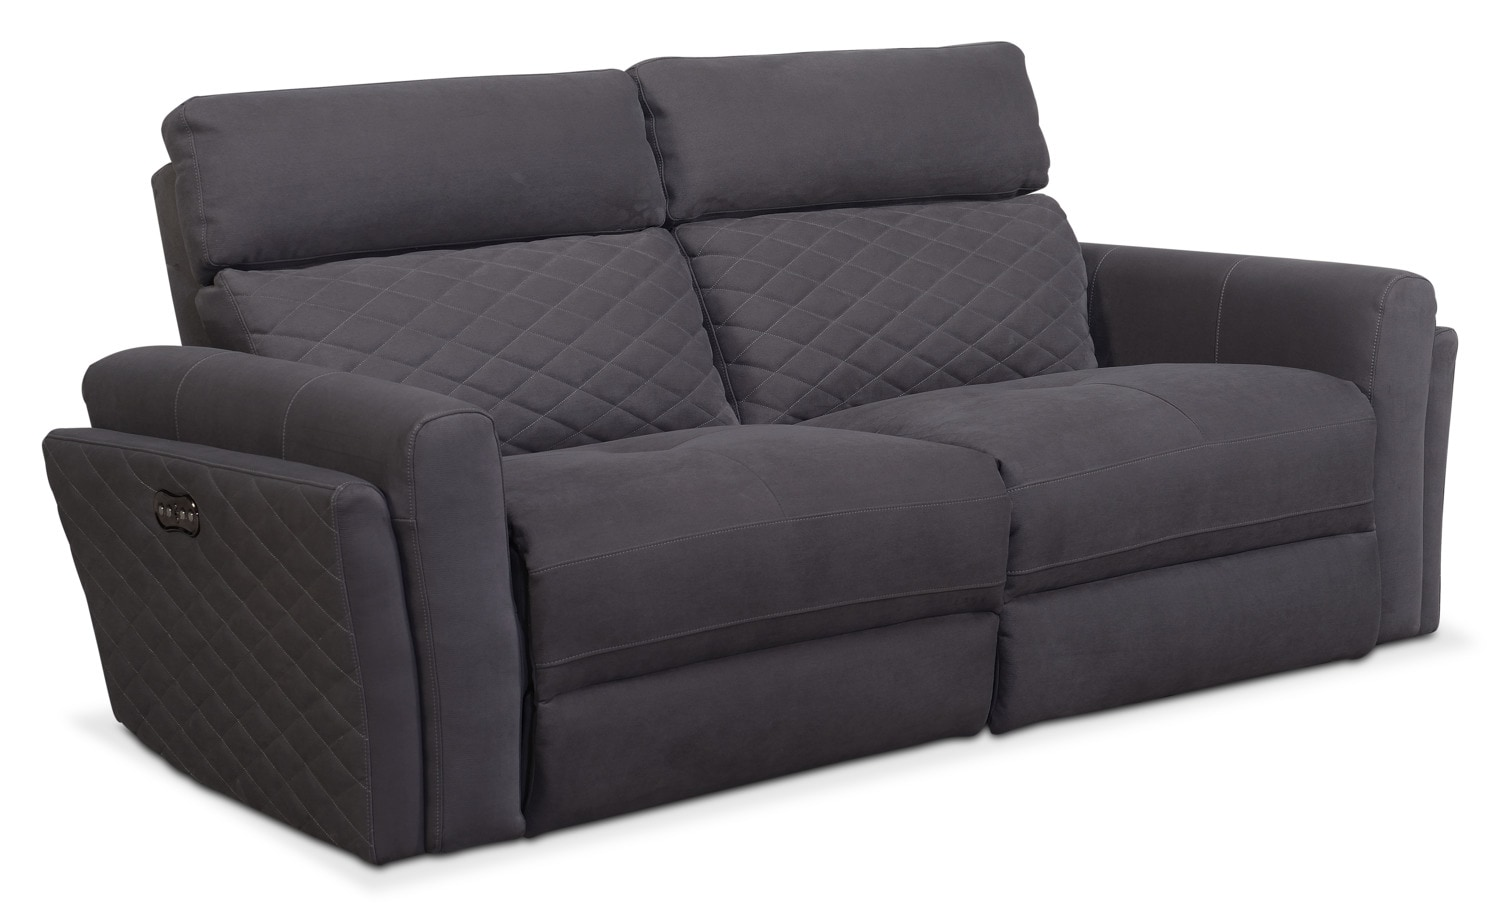 Catalina 2-Piece Power Reclining Sofa - Gray